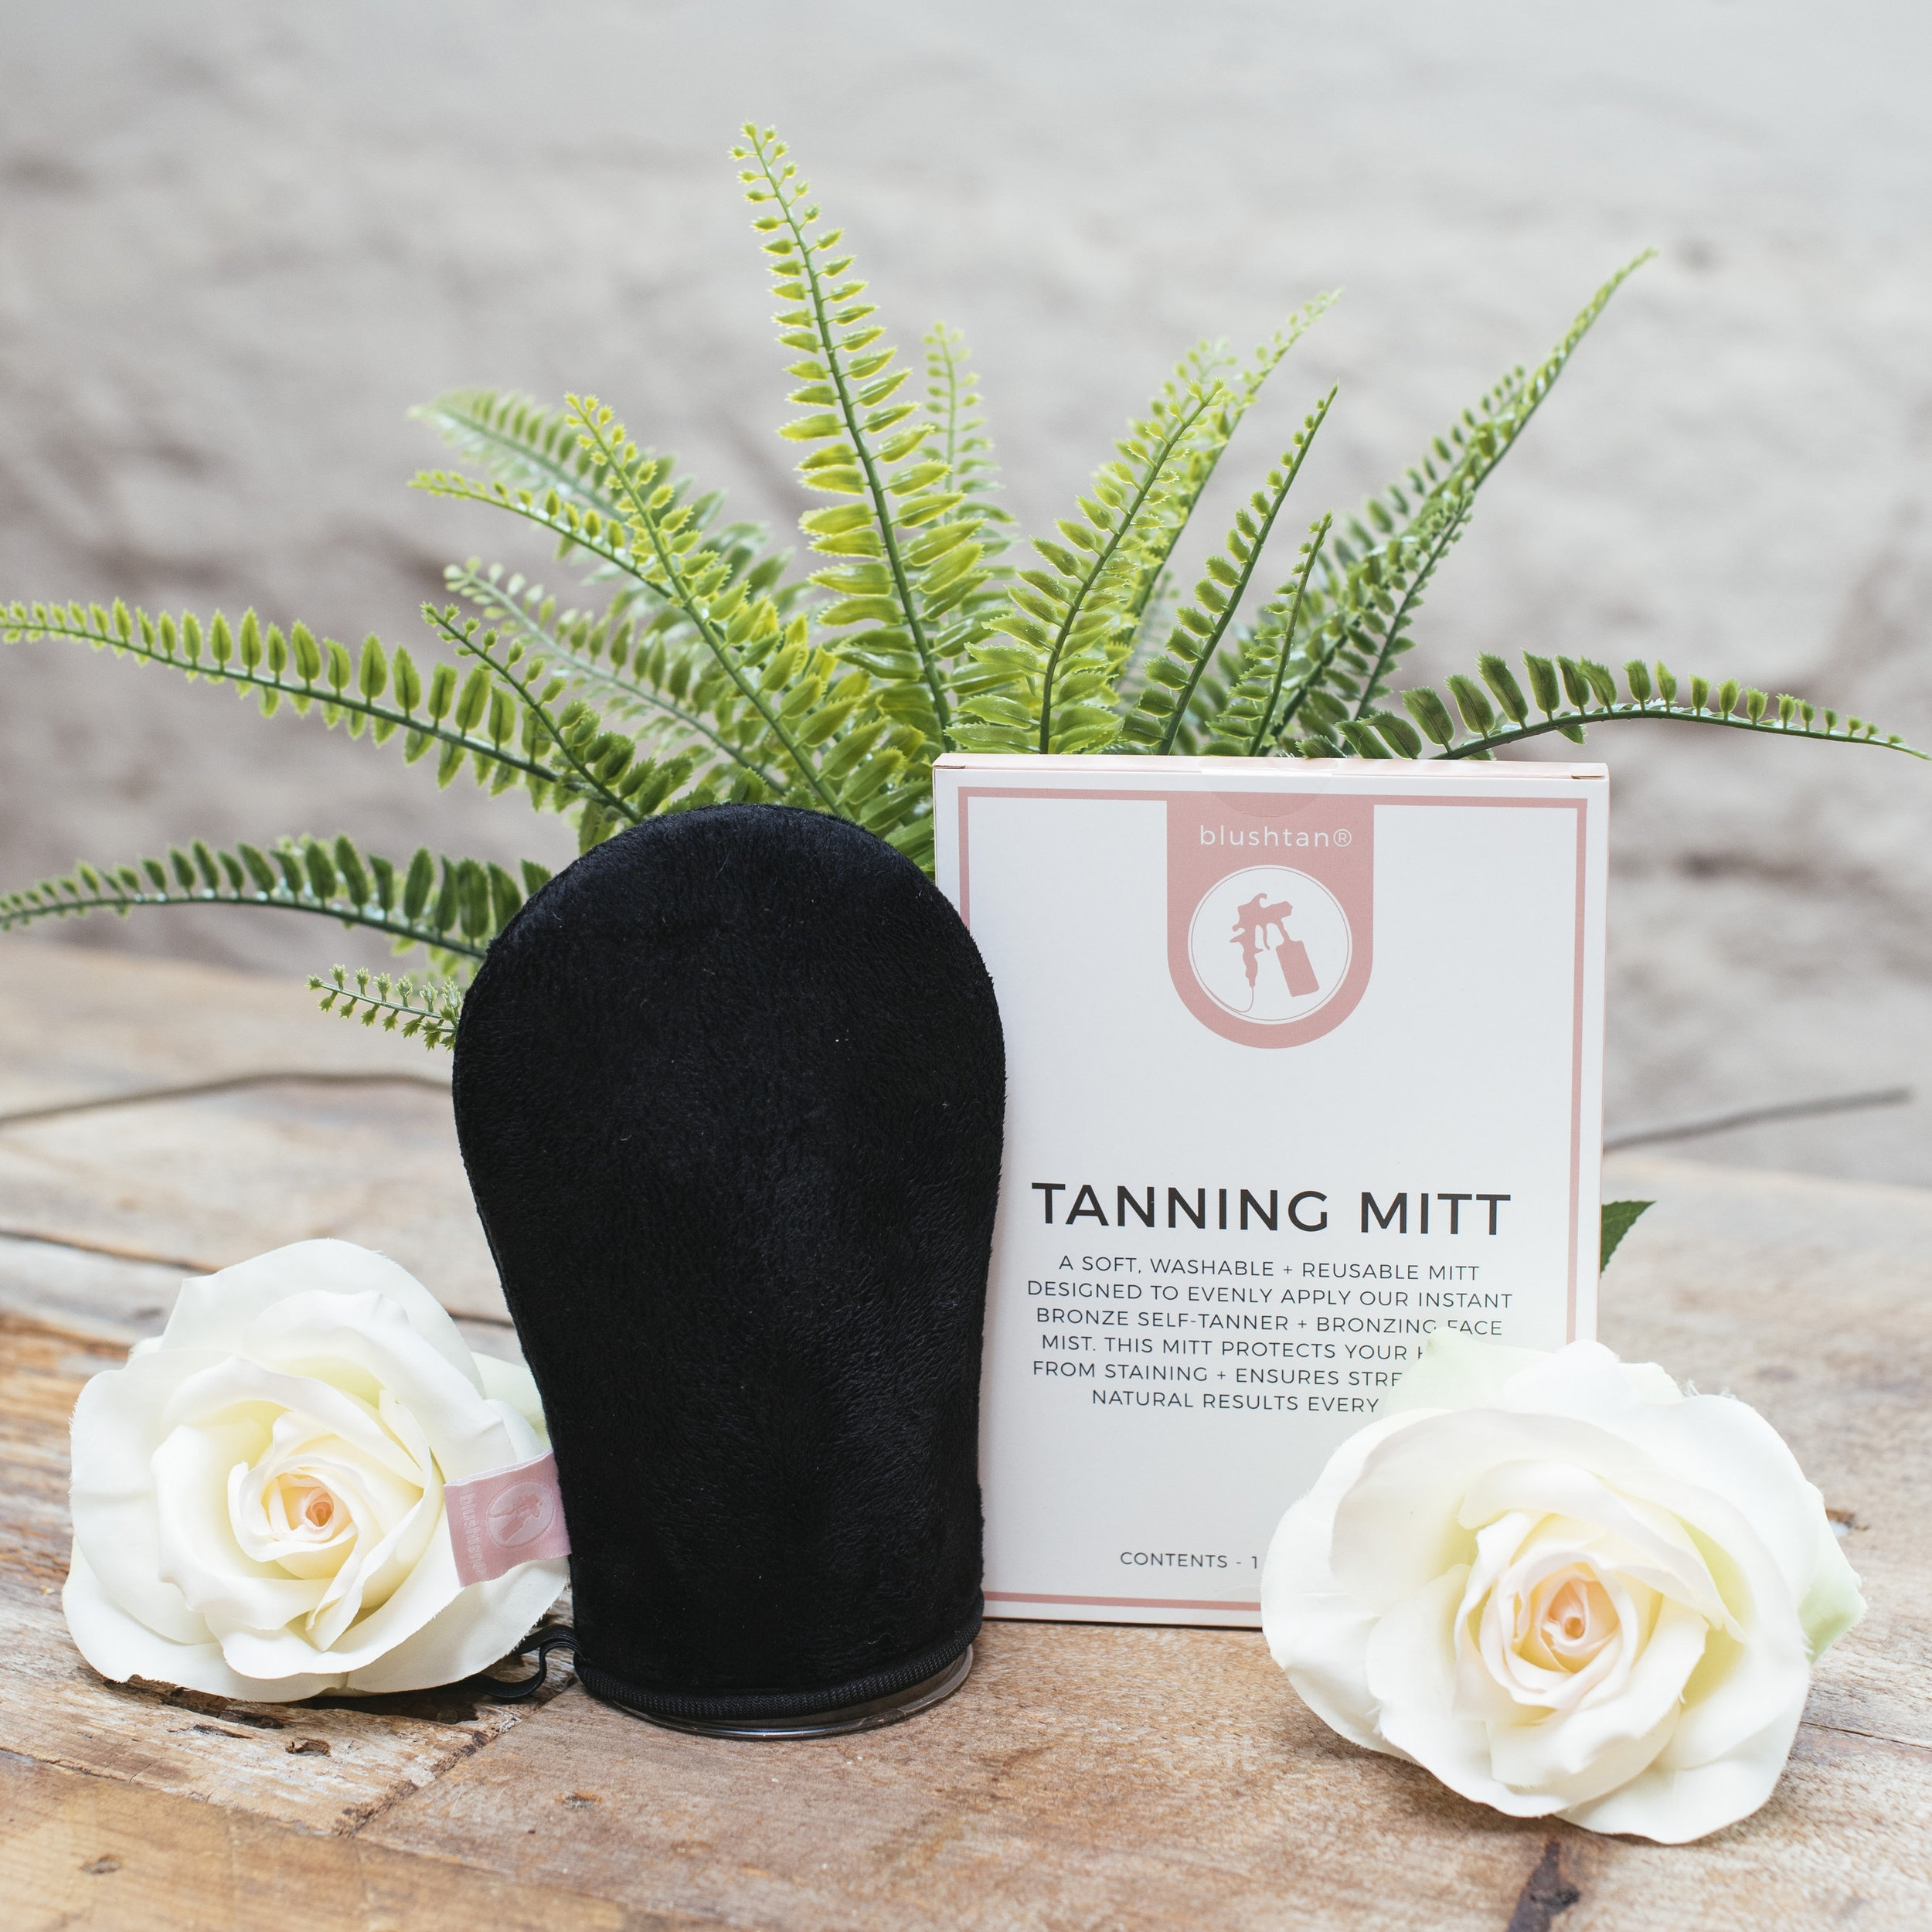 How to use: - Place your hand inside the tanning mitt and apply your self-tanner or body bronzer onto the soft surface of the mitt. Rub gently onto exfoliated, clean skin in a circular motion until product is evenly blended. Allow product to dry and repeat as desired.